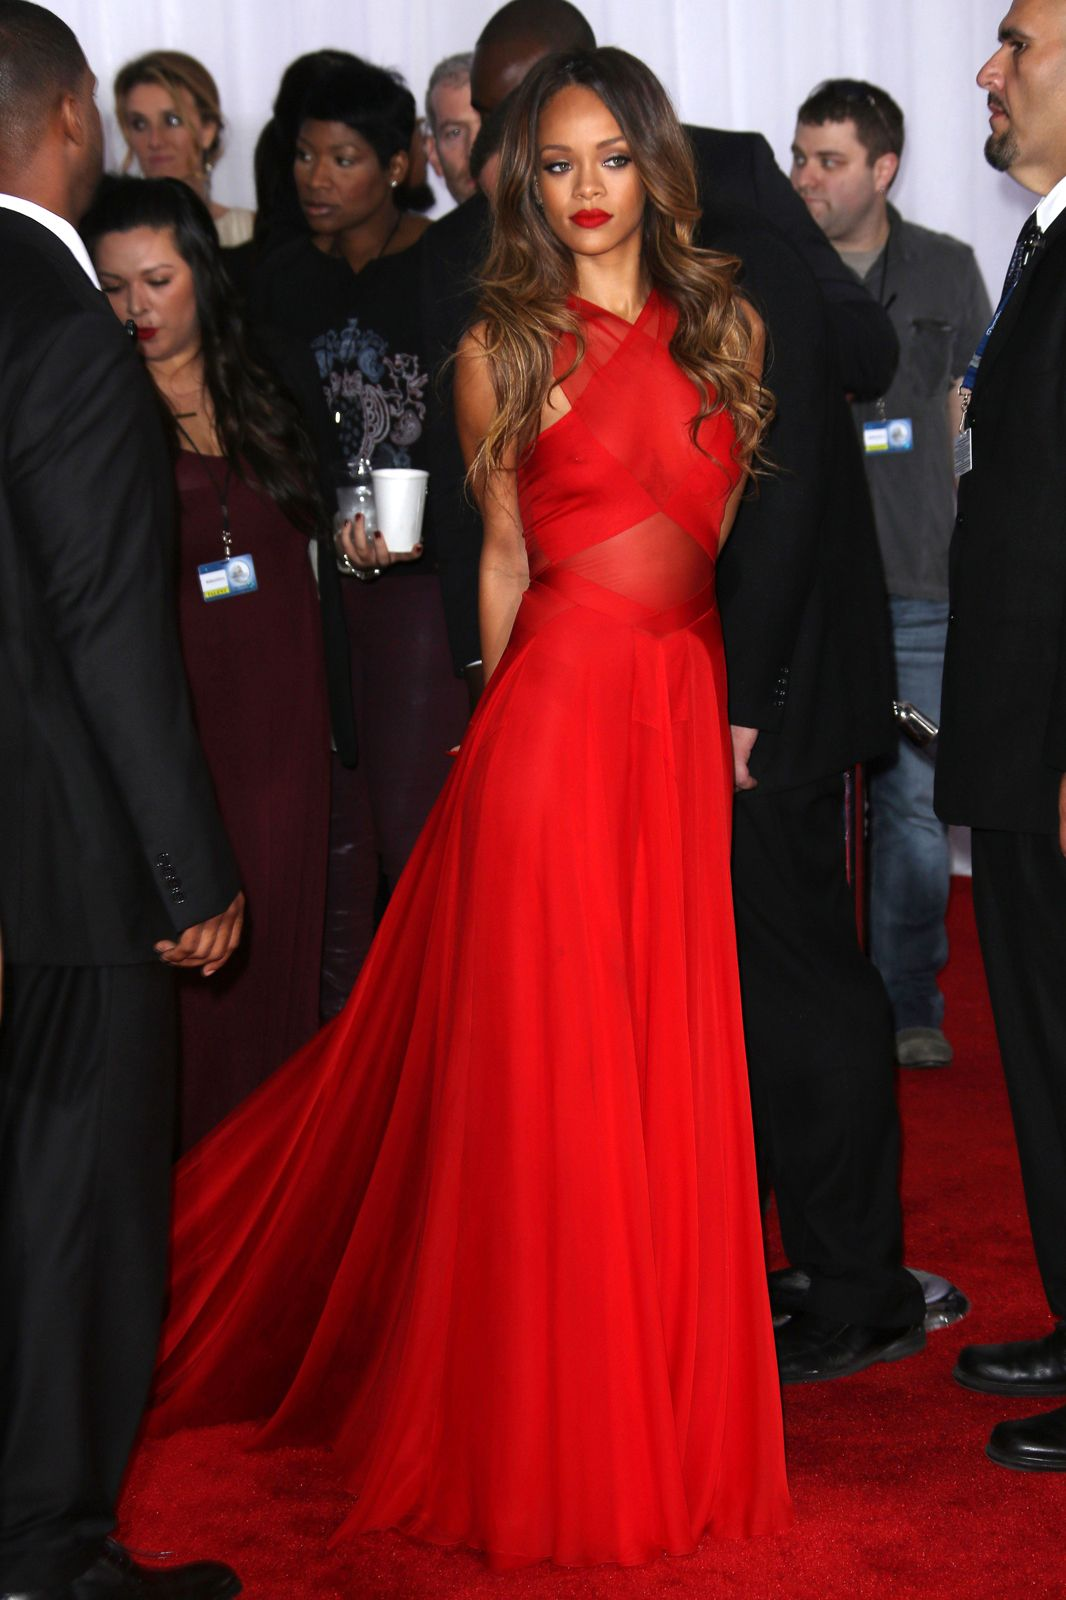 Rihanna In An Azzedine Alaia Gown At The Annual Grammy Awards